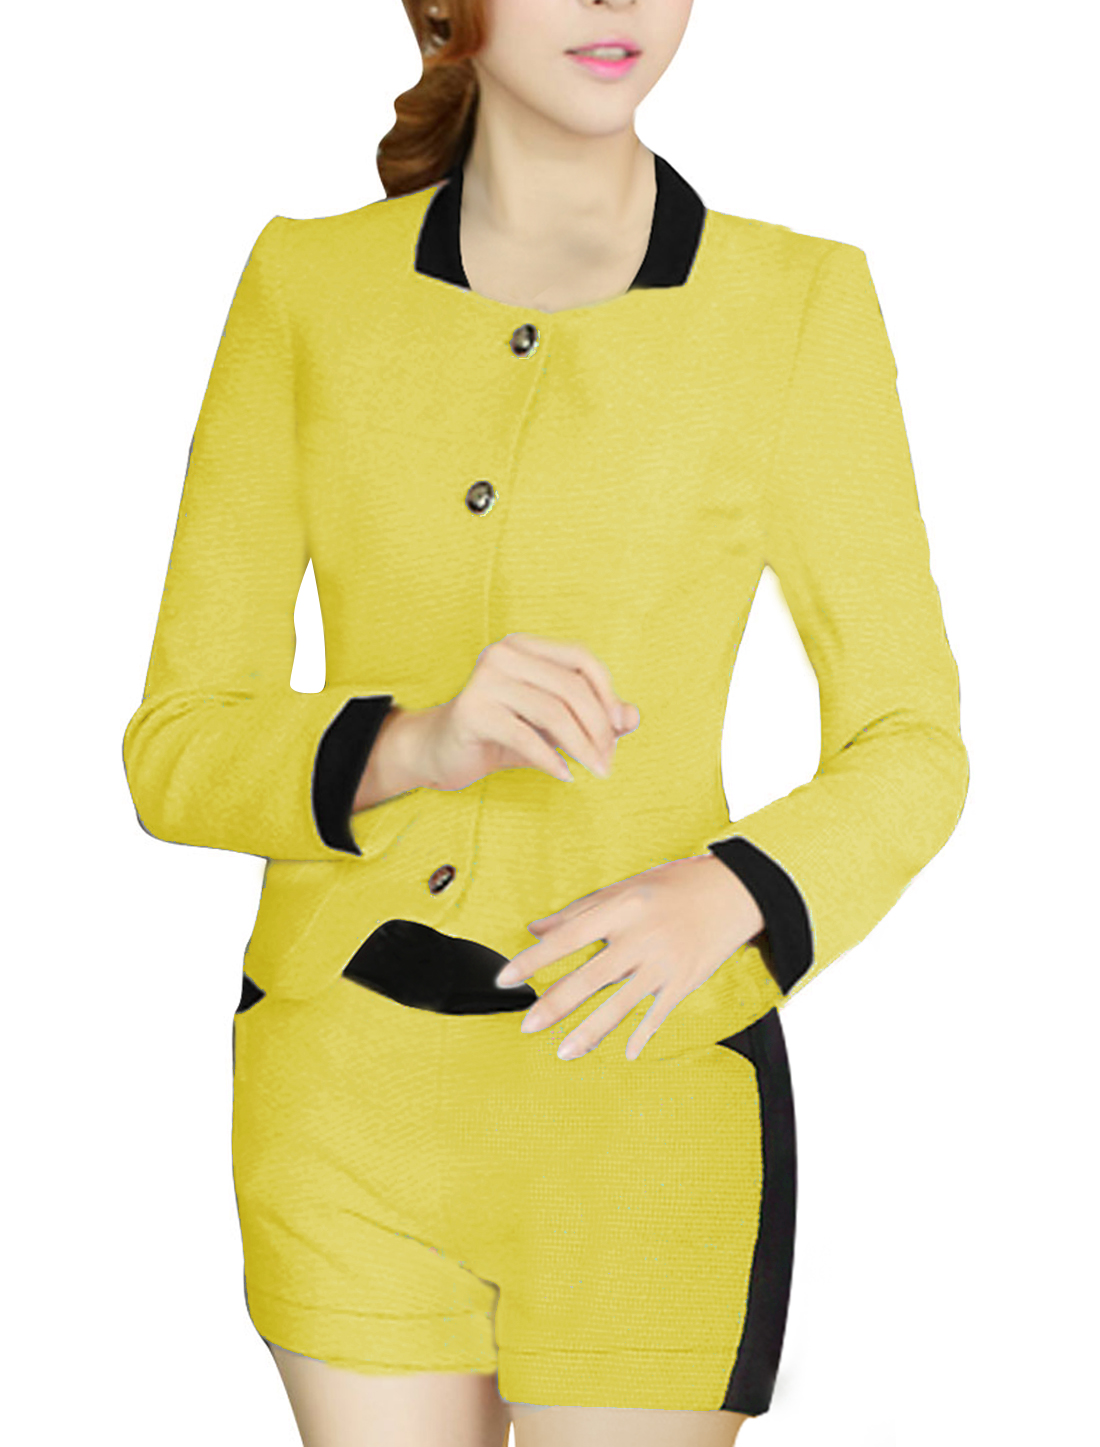 Lady Single Breasted Jacket & Mid Rise Pocket Front Yellow Shorts XS